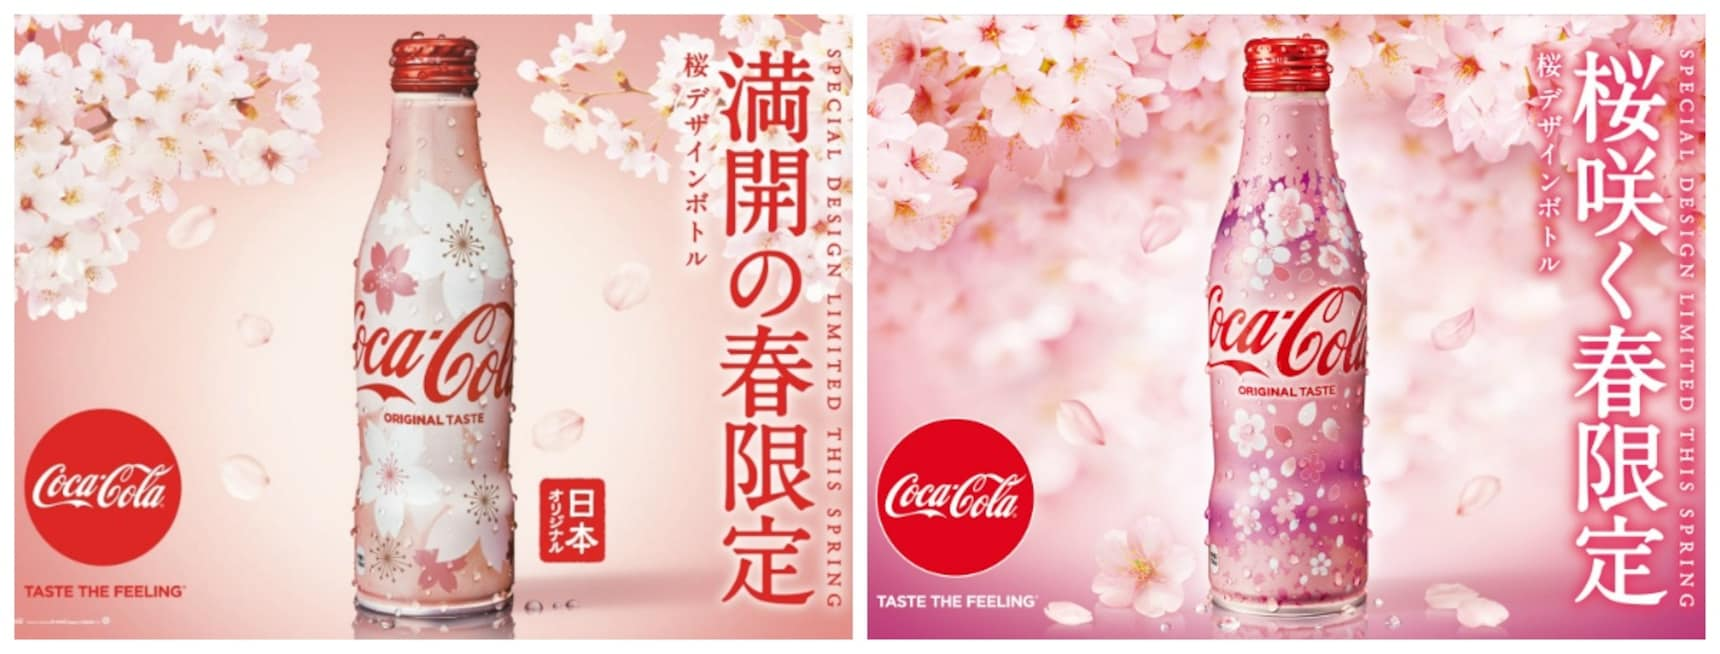 Celebrate 2019 Cherry Blossom Season with Coke